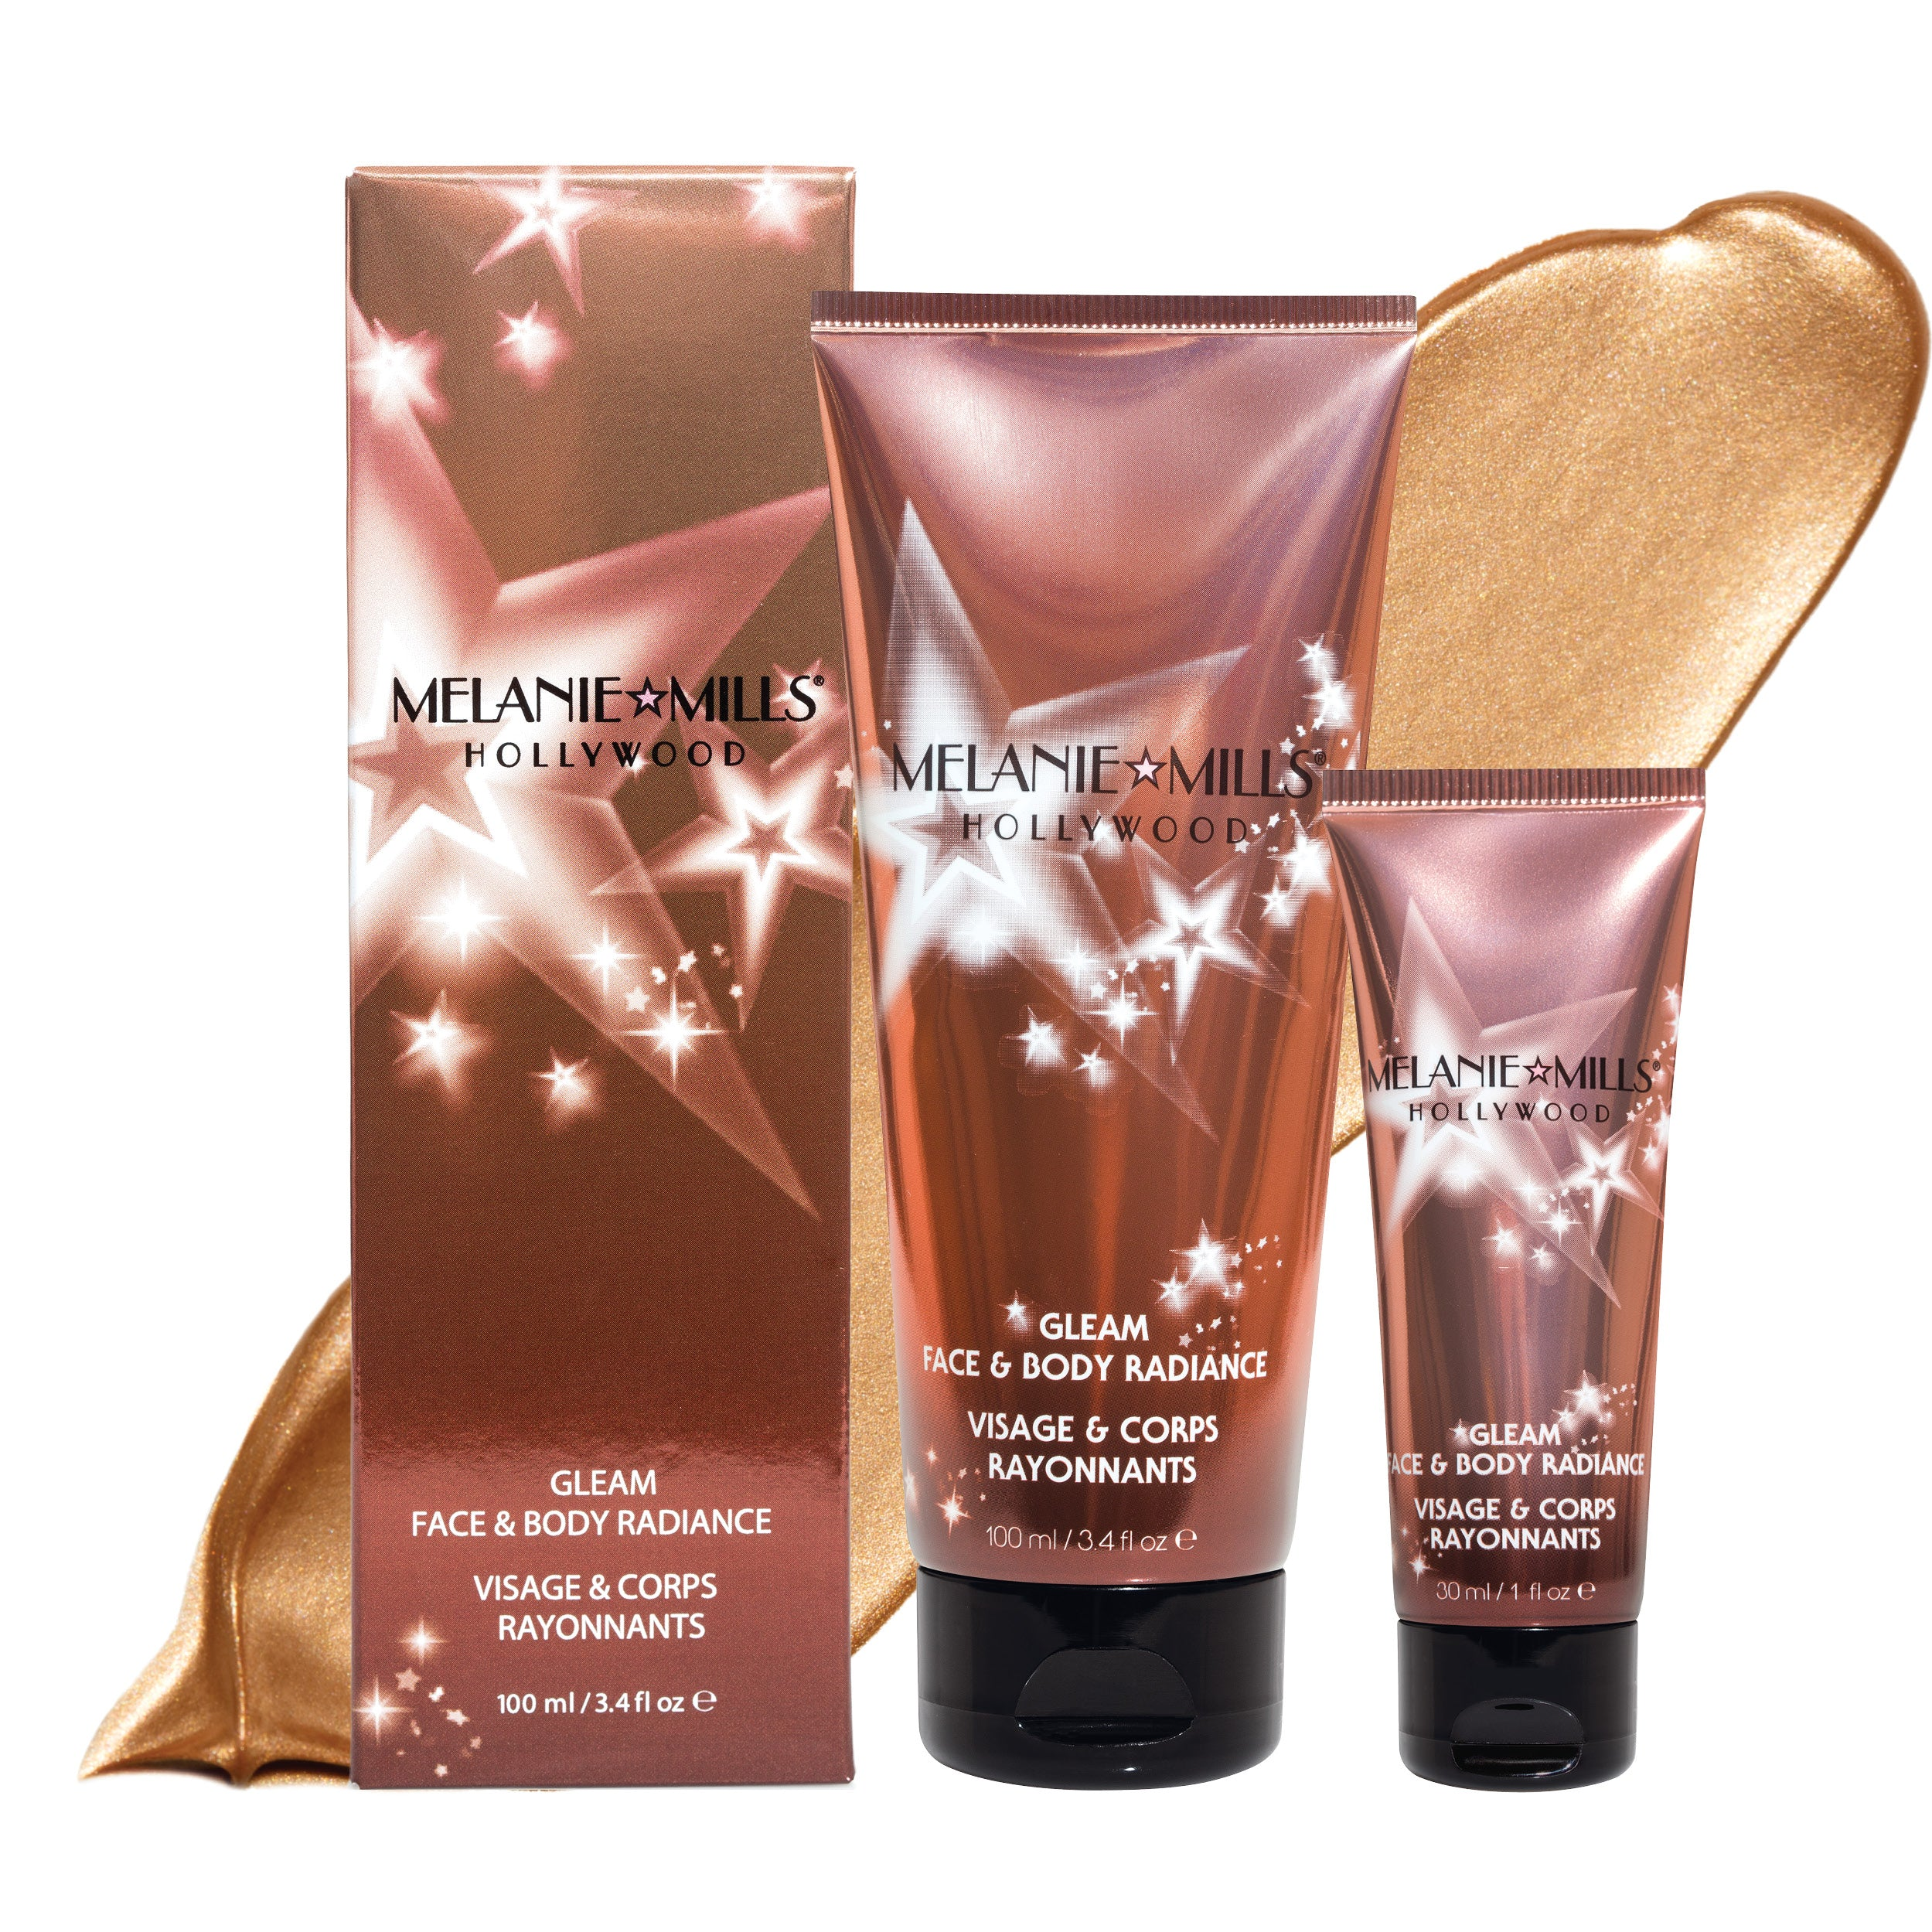 PEACH DELUXE Gleam Face & Body Radiance All In One Makeup, Moisturizer & Glow